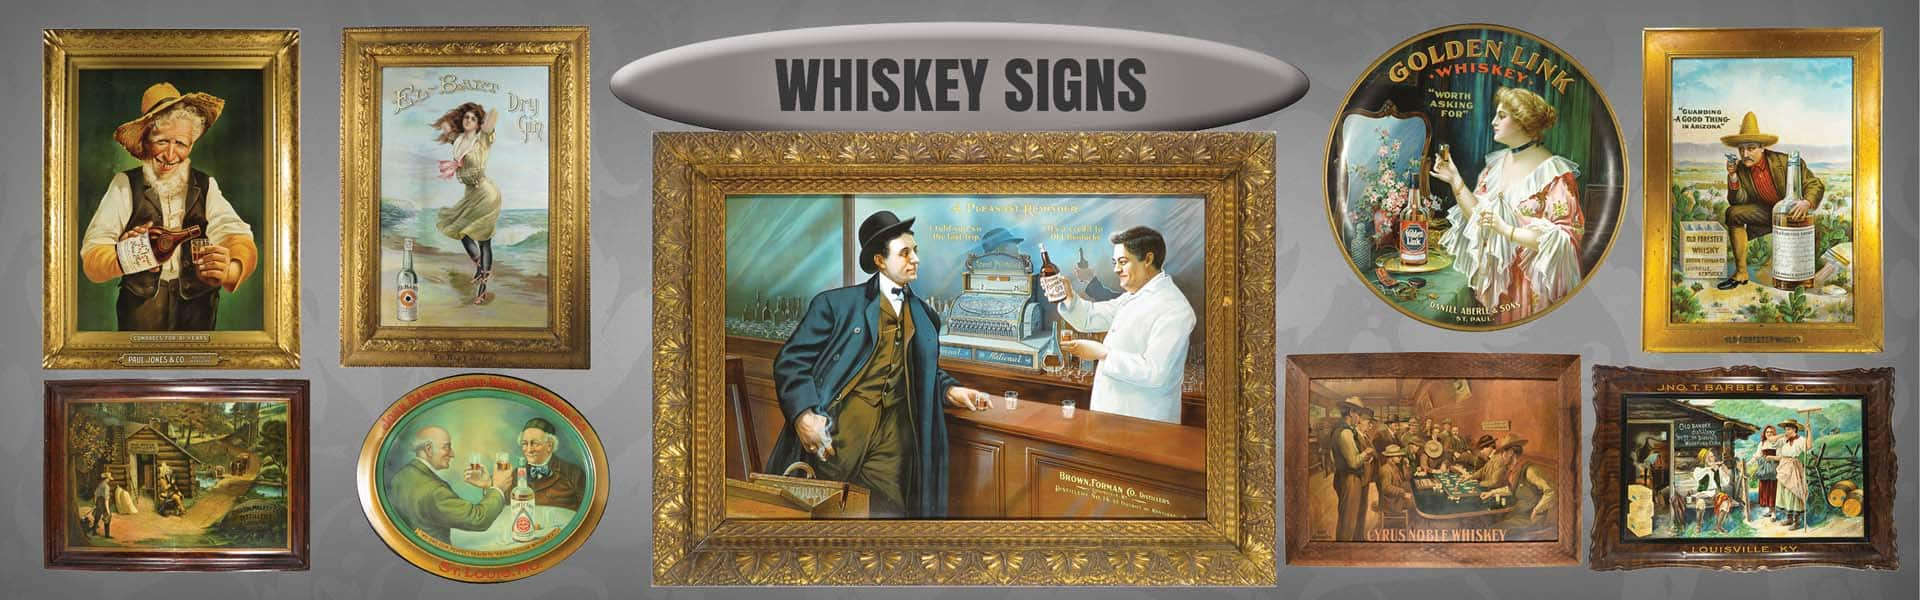 Whiskey Signs